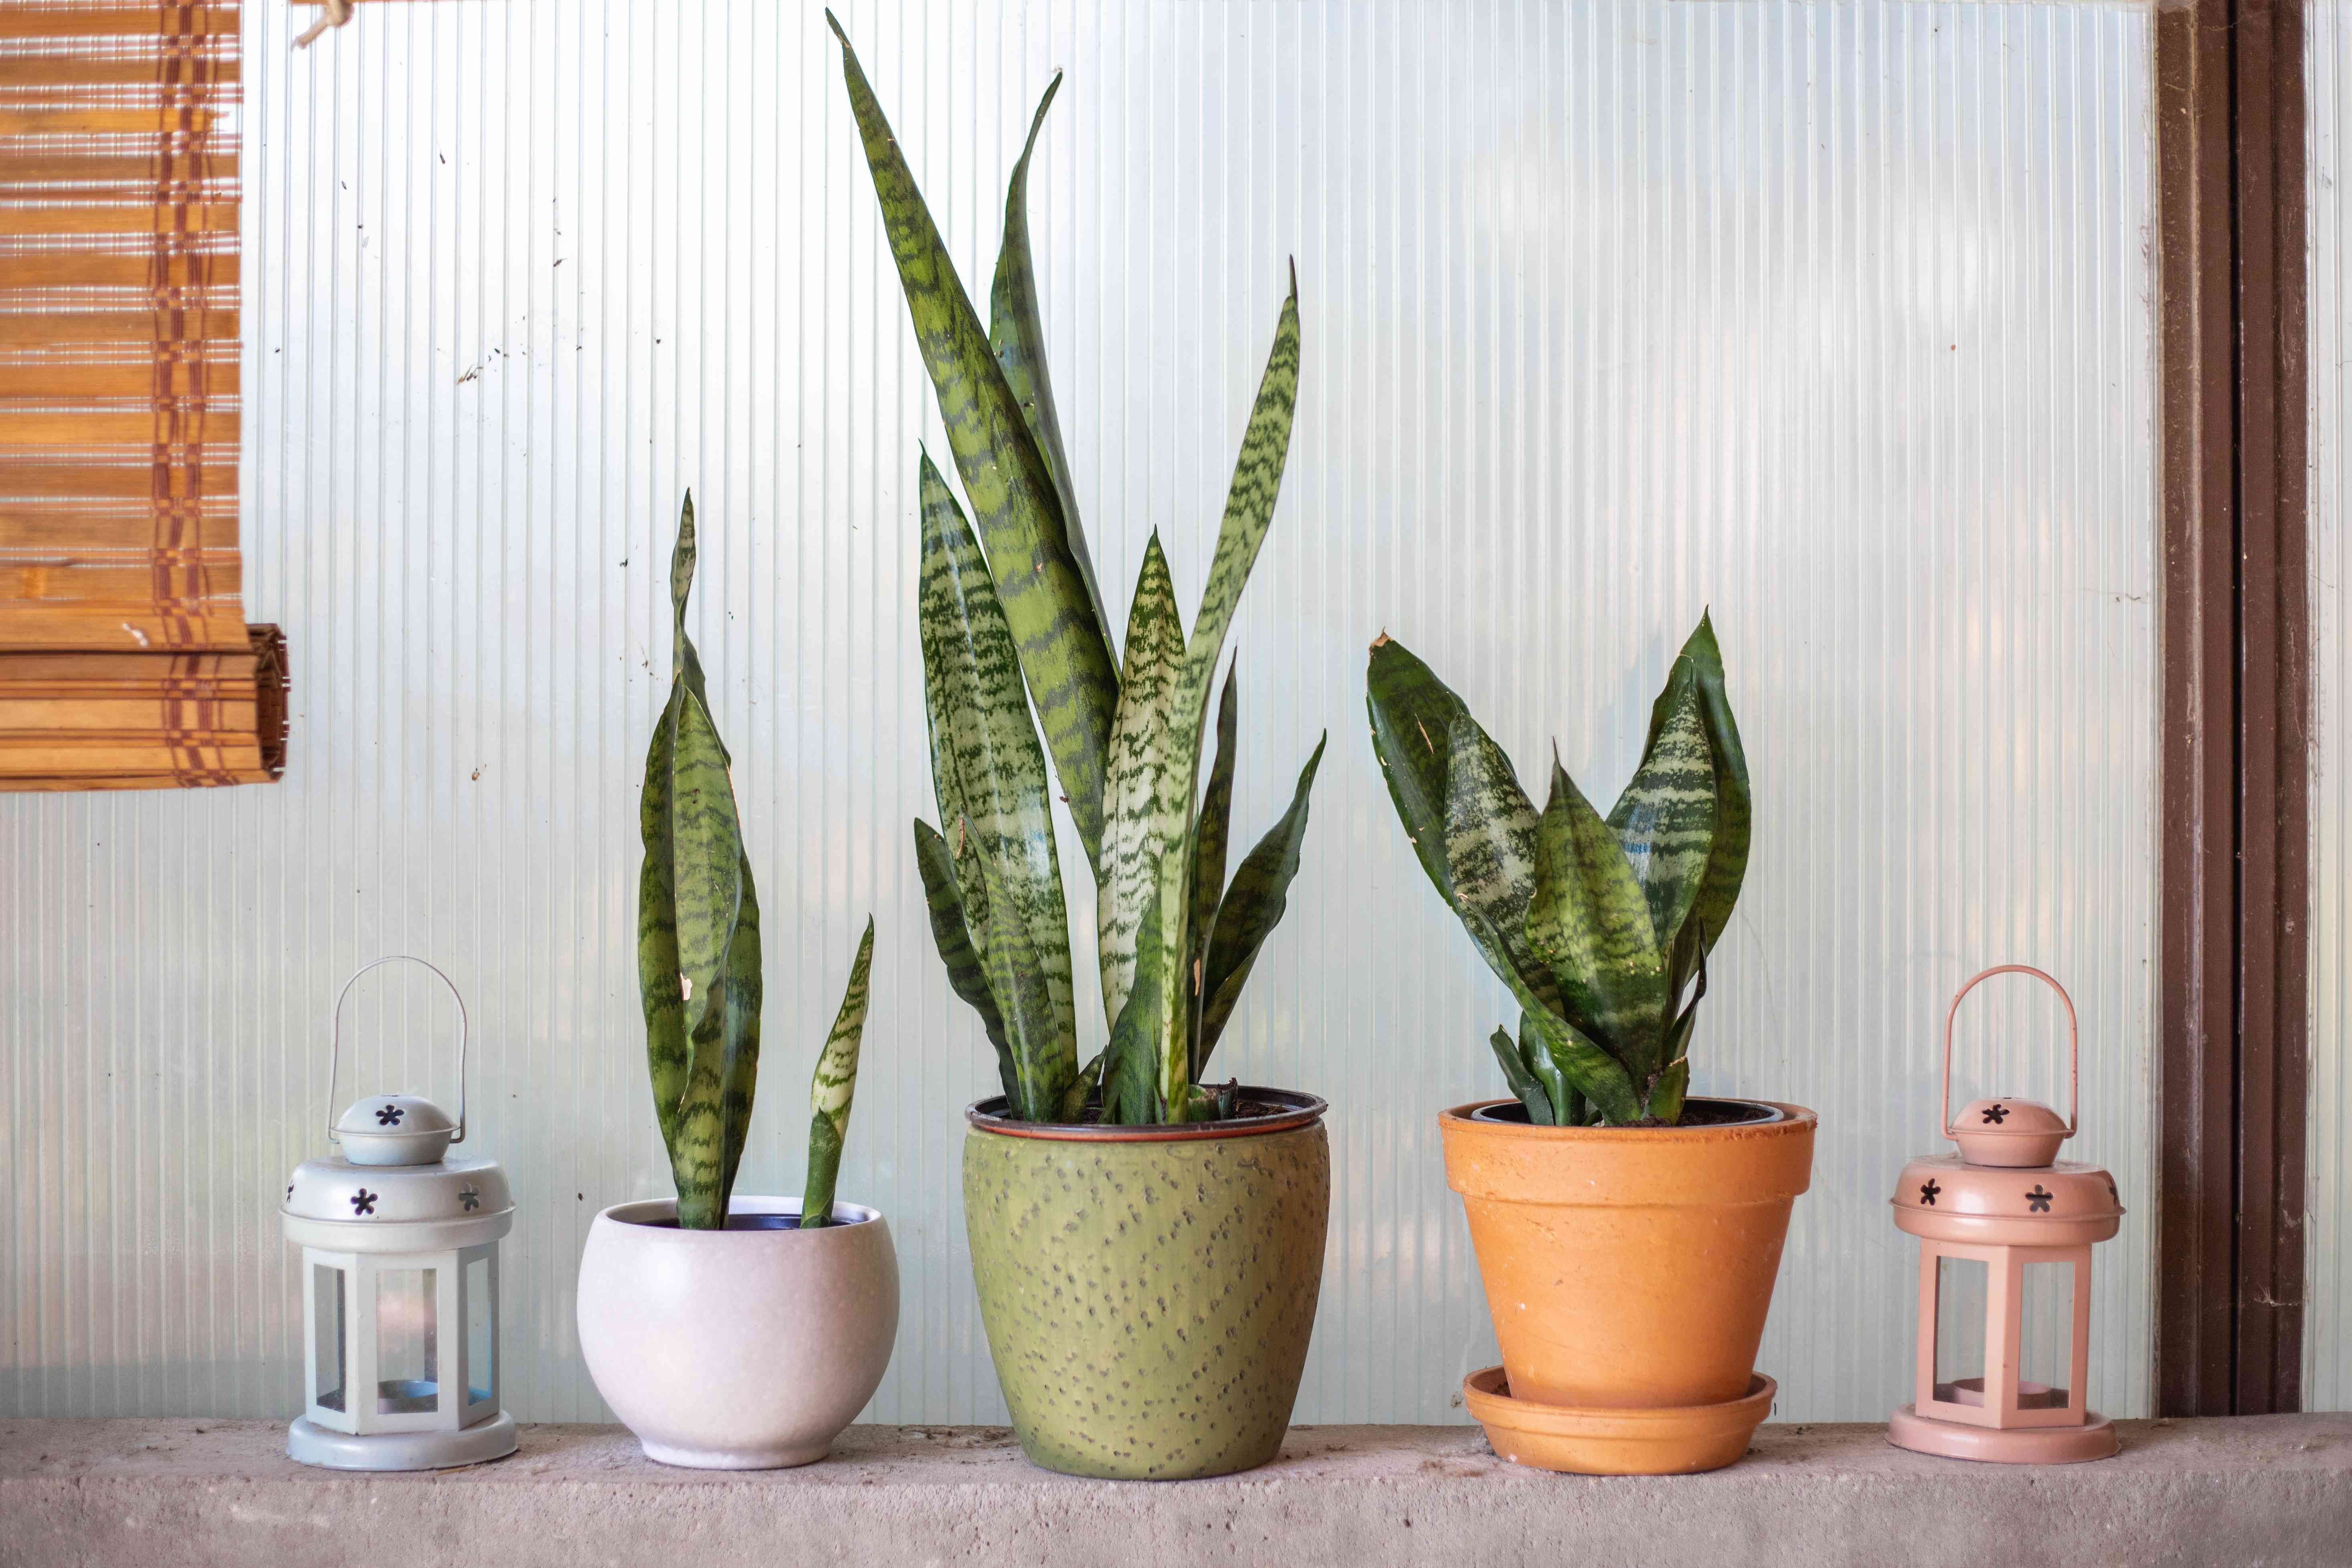 three snake plants in different pots sit on concrete ledge next to lanterns